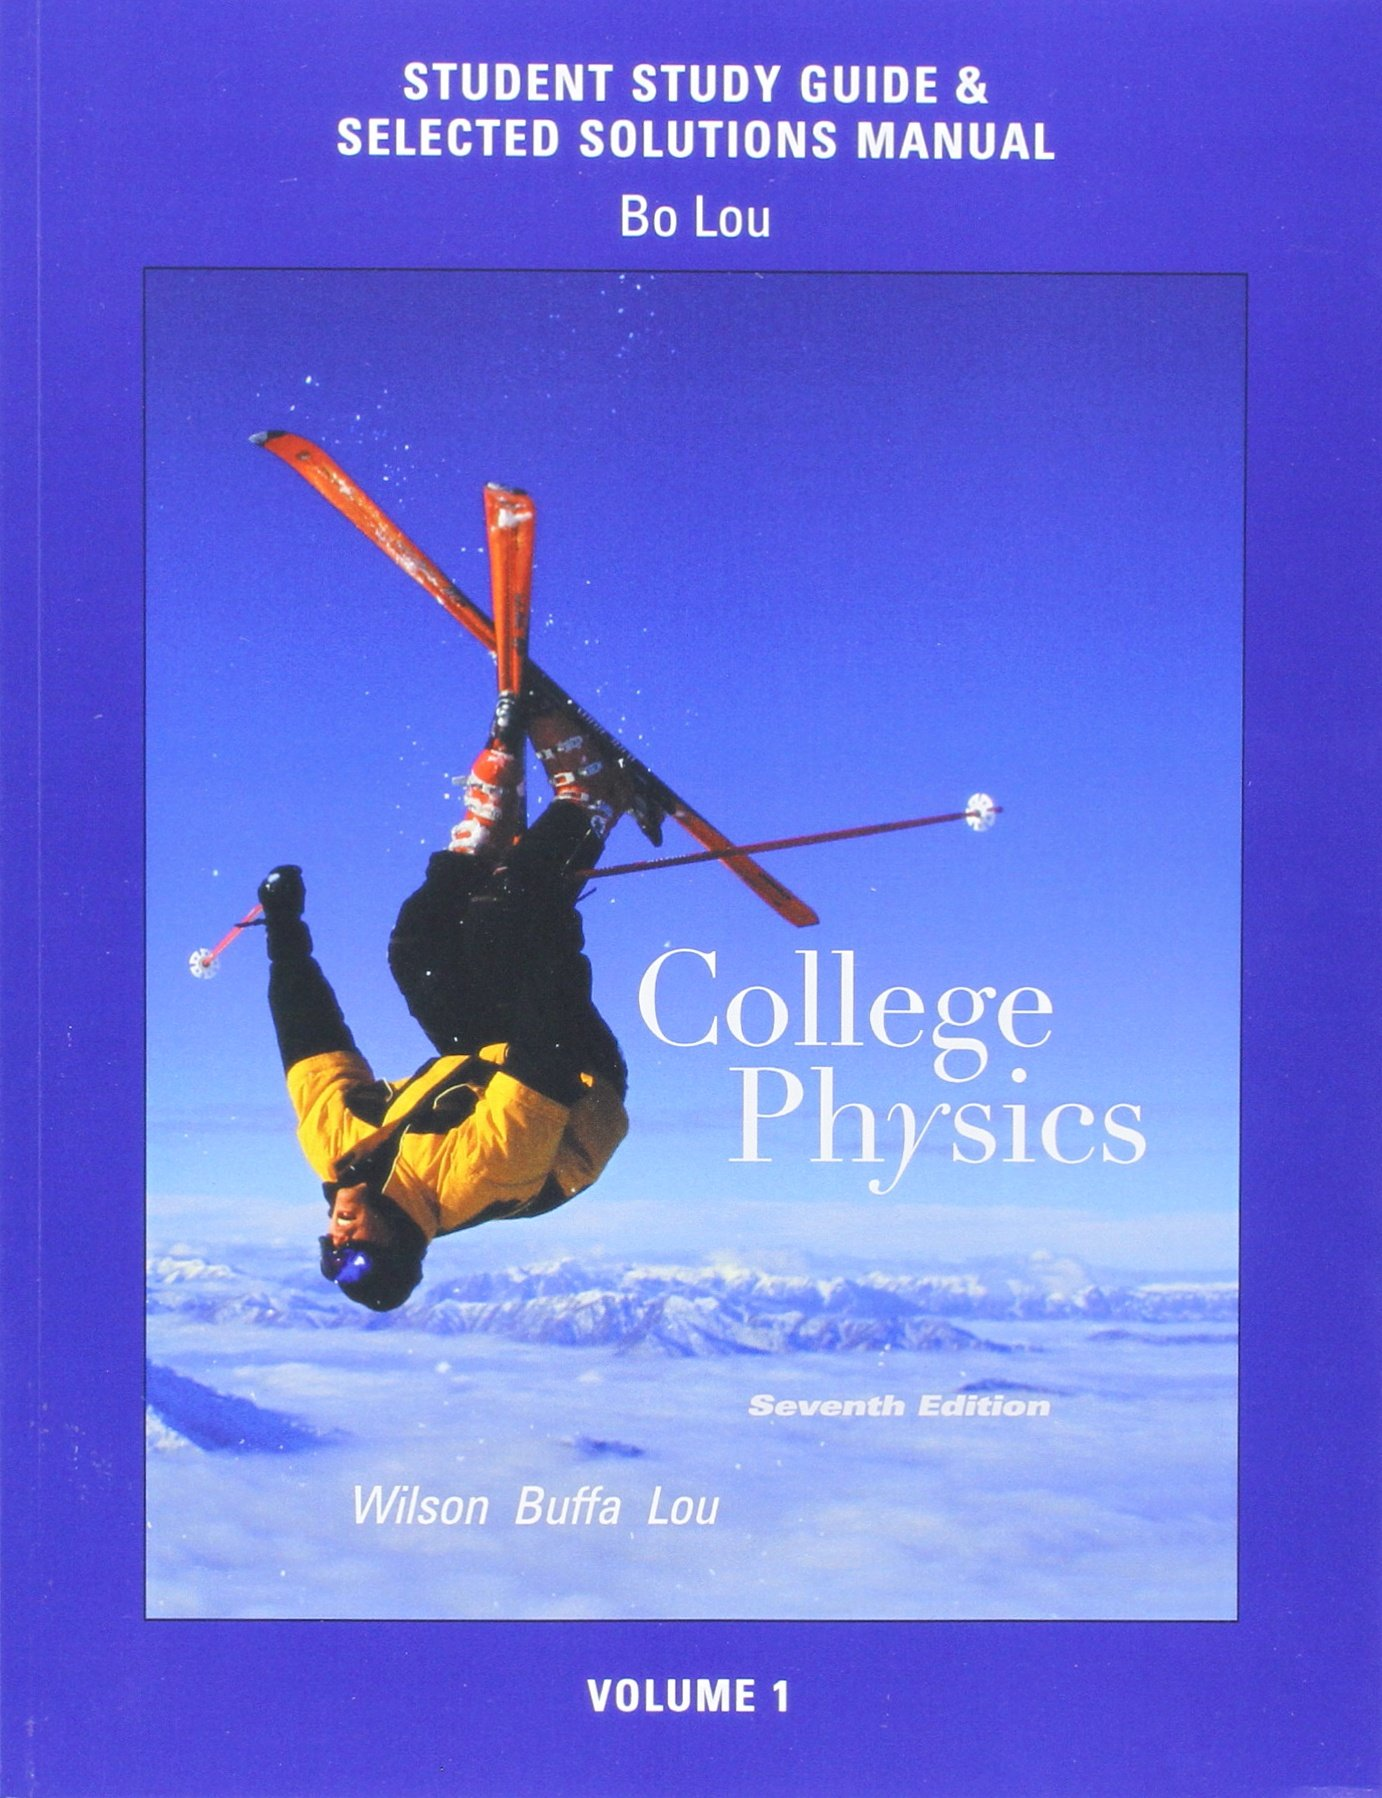 Buy College Physics + Masteringphysics With Pearson Etext + Study Guide and  Selected Solutions Manual Book Online at Low Prices in India | College  Physics + ...